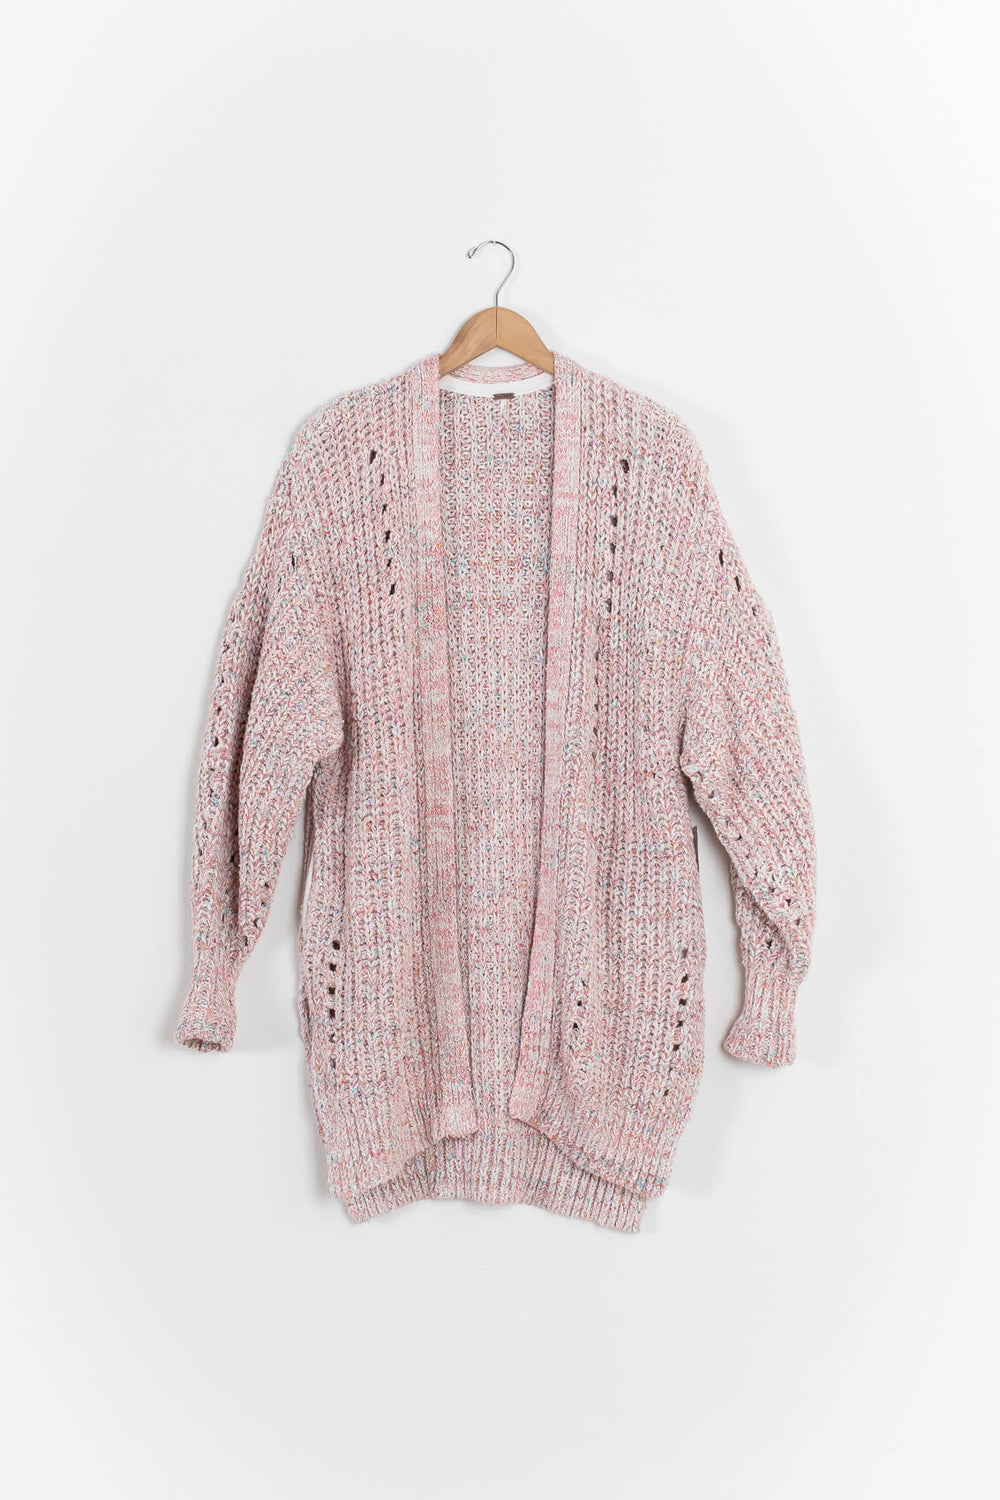 Free People Smoothie Cardi Thick Knit Cardigan